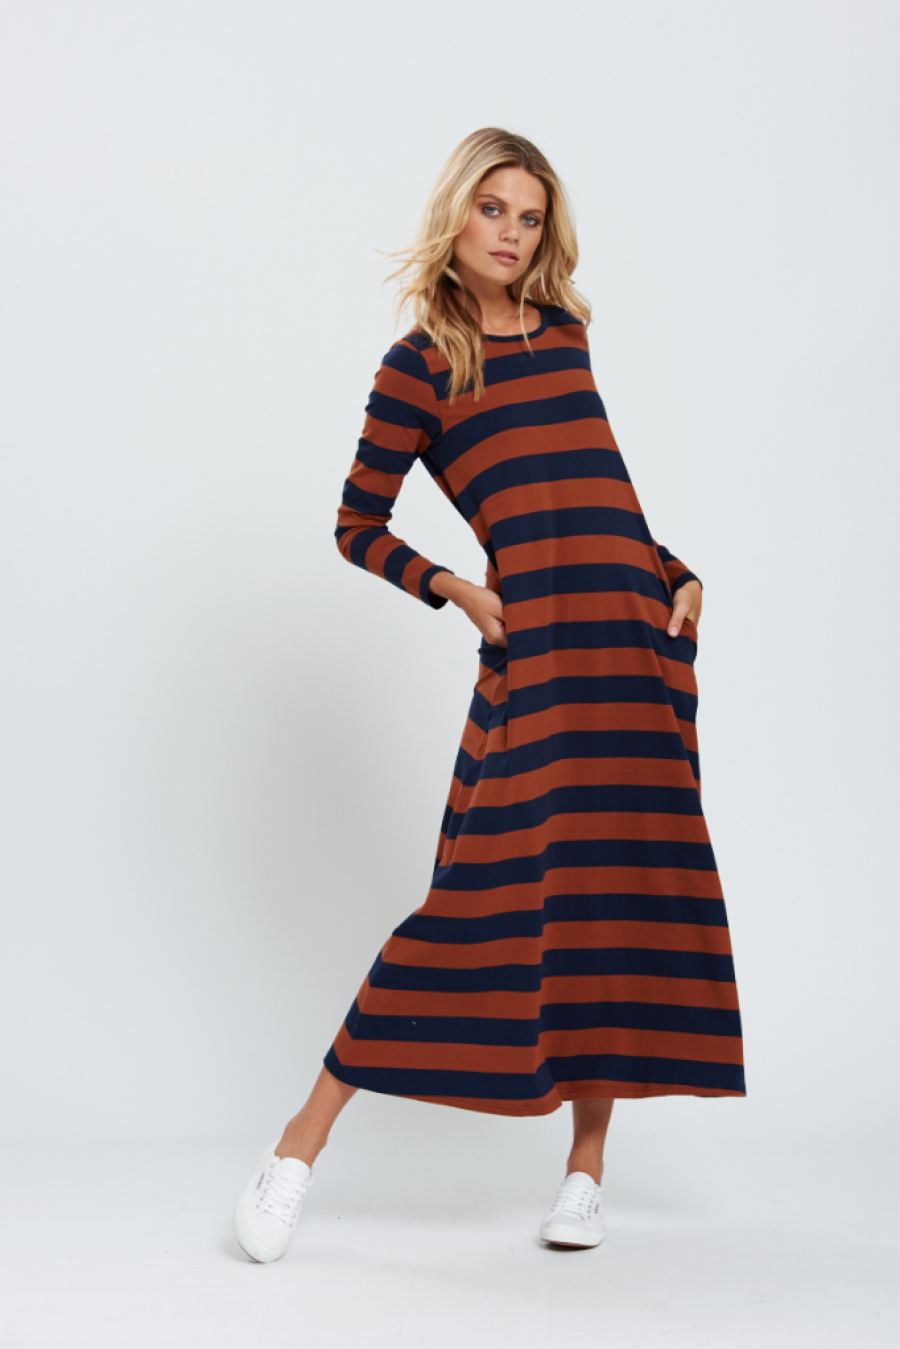 See Need Want Fashion Autumn Must Have Striped Maxi Dress Bohemian Traders